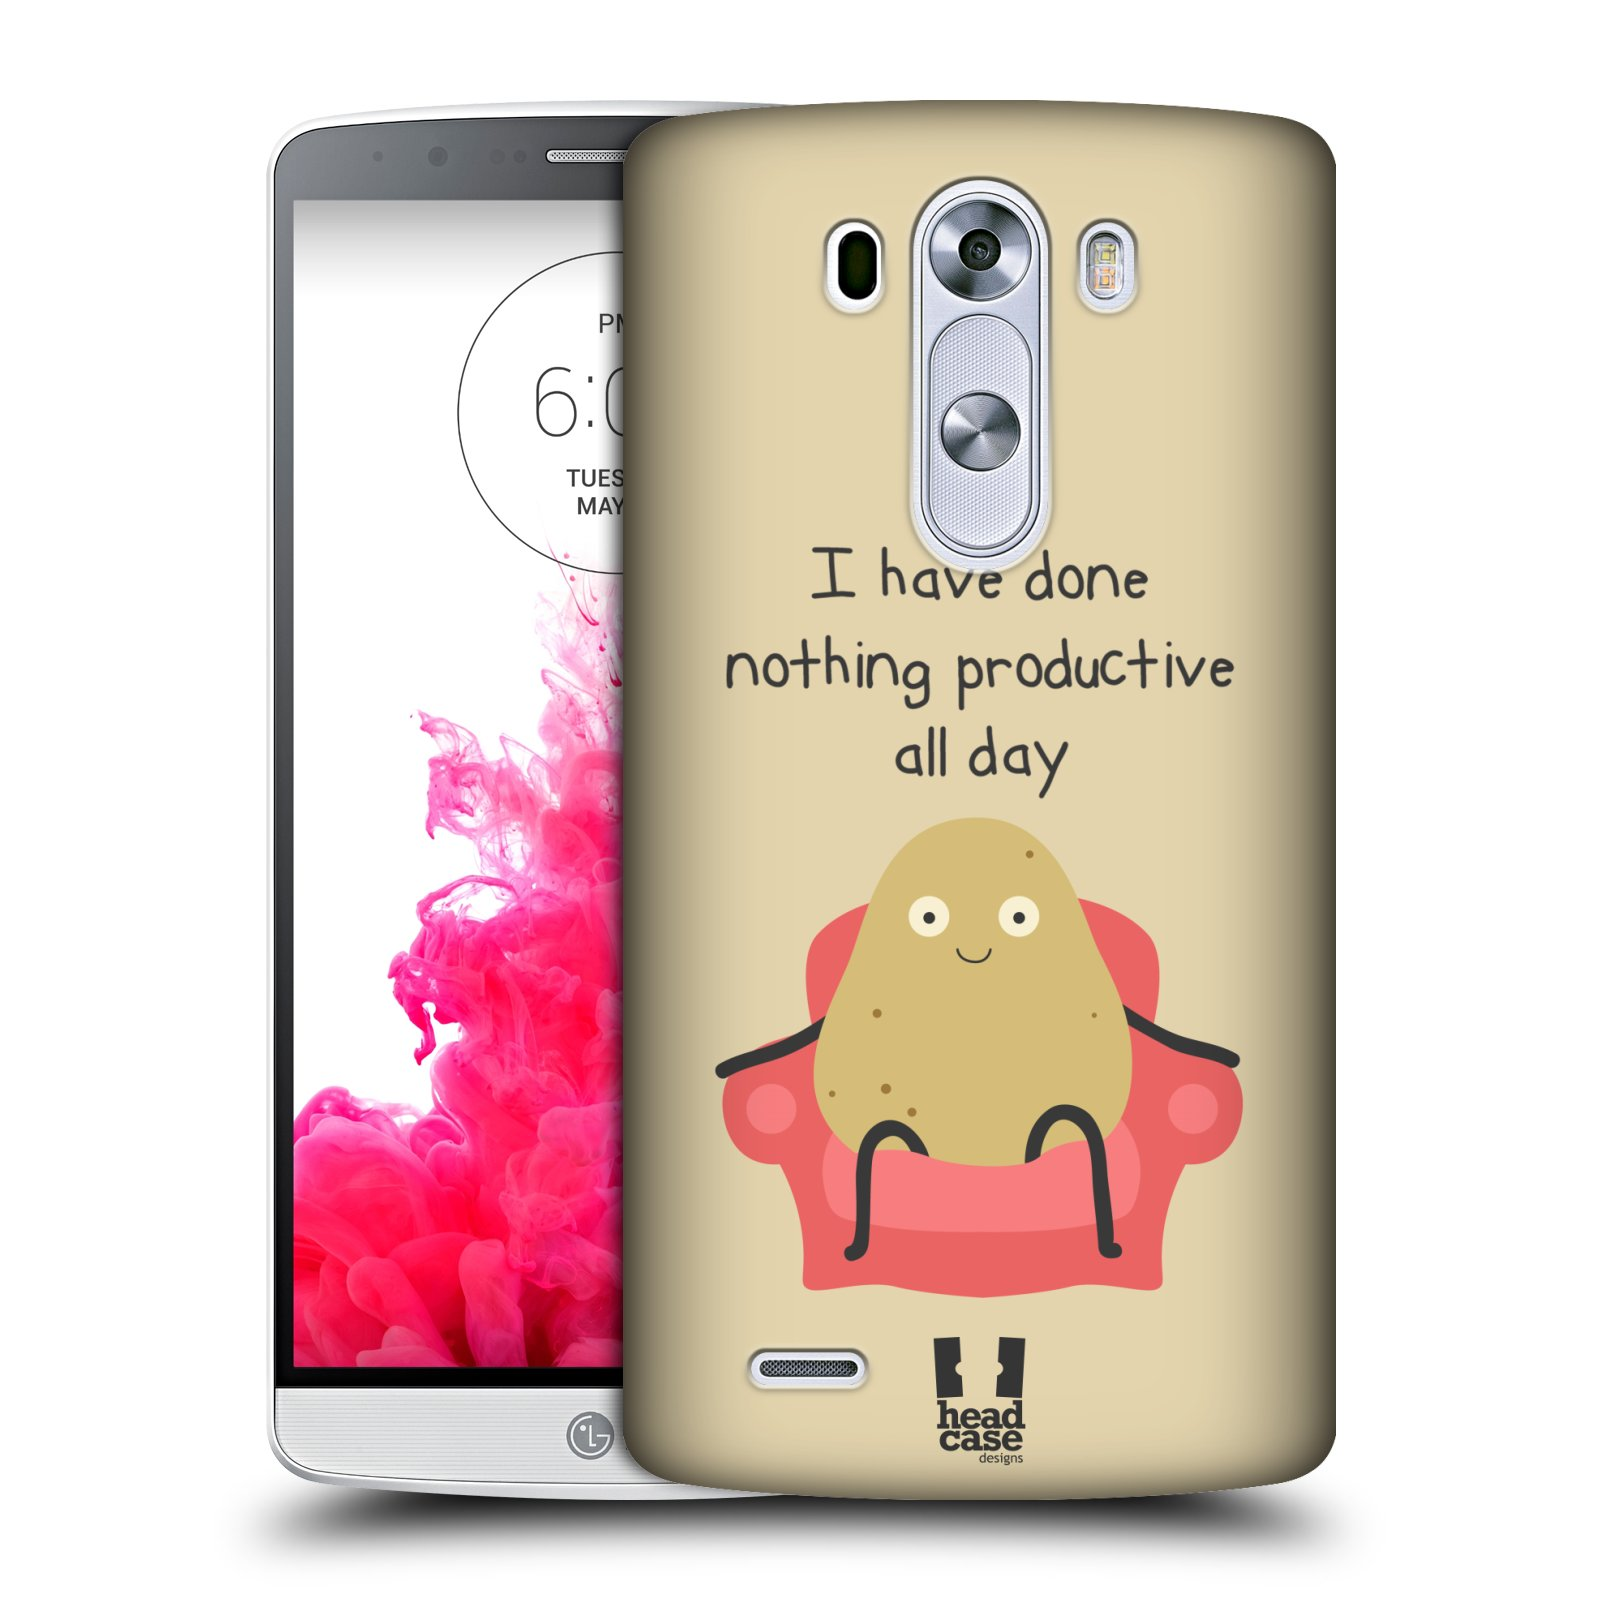 HEAD CASE DESIGNS LITTLE DOSES OF NONSENSE AND RANDOMNESS CASE FOR LG PHONES 1